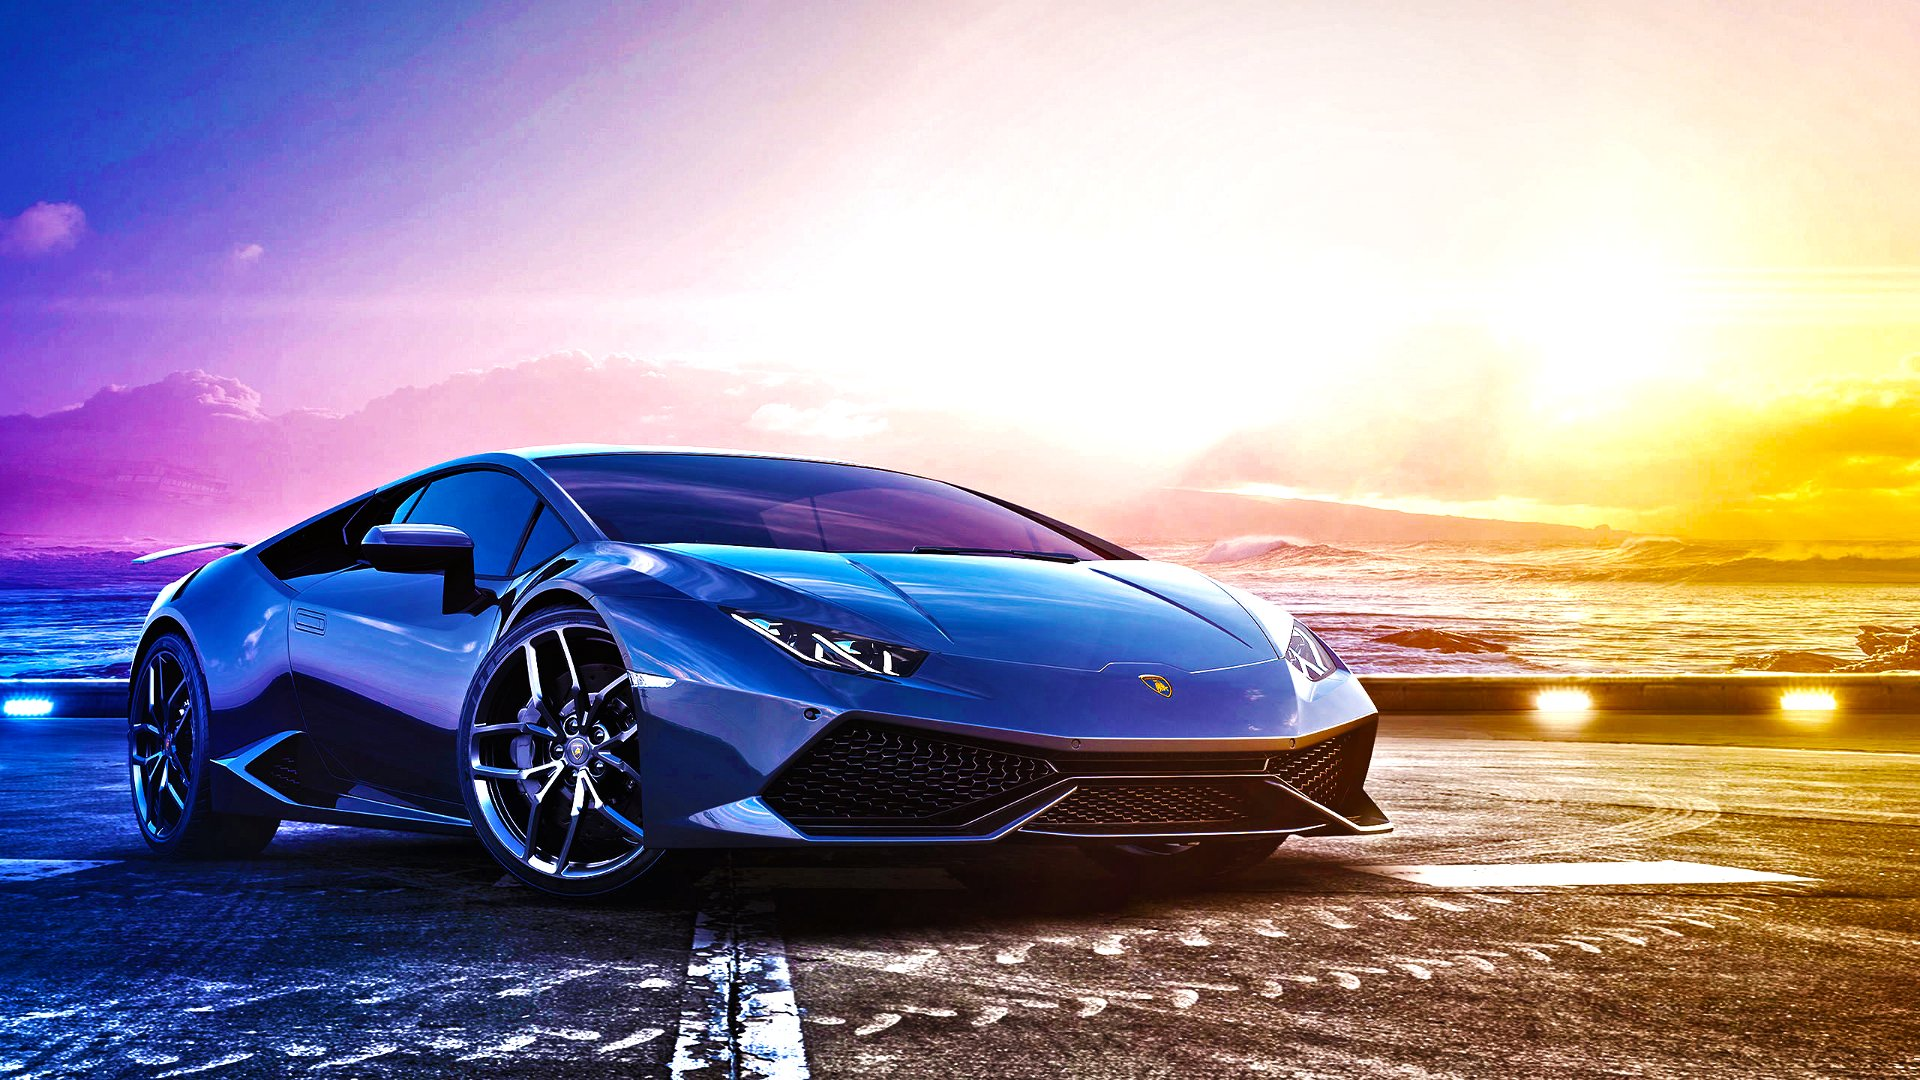 New Lamborghini Hd Wallpaper Background Image 1920X1080 On This Month